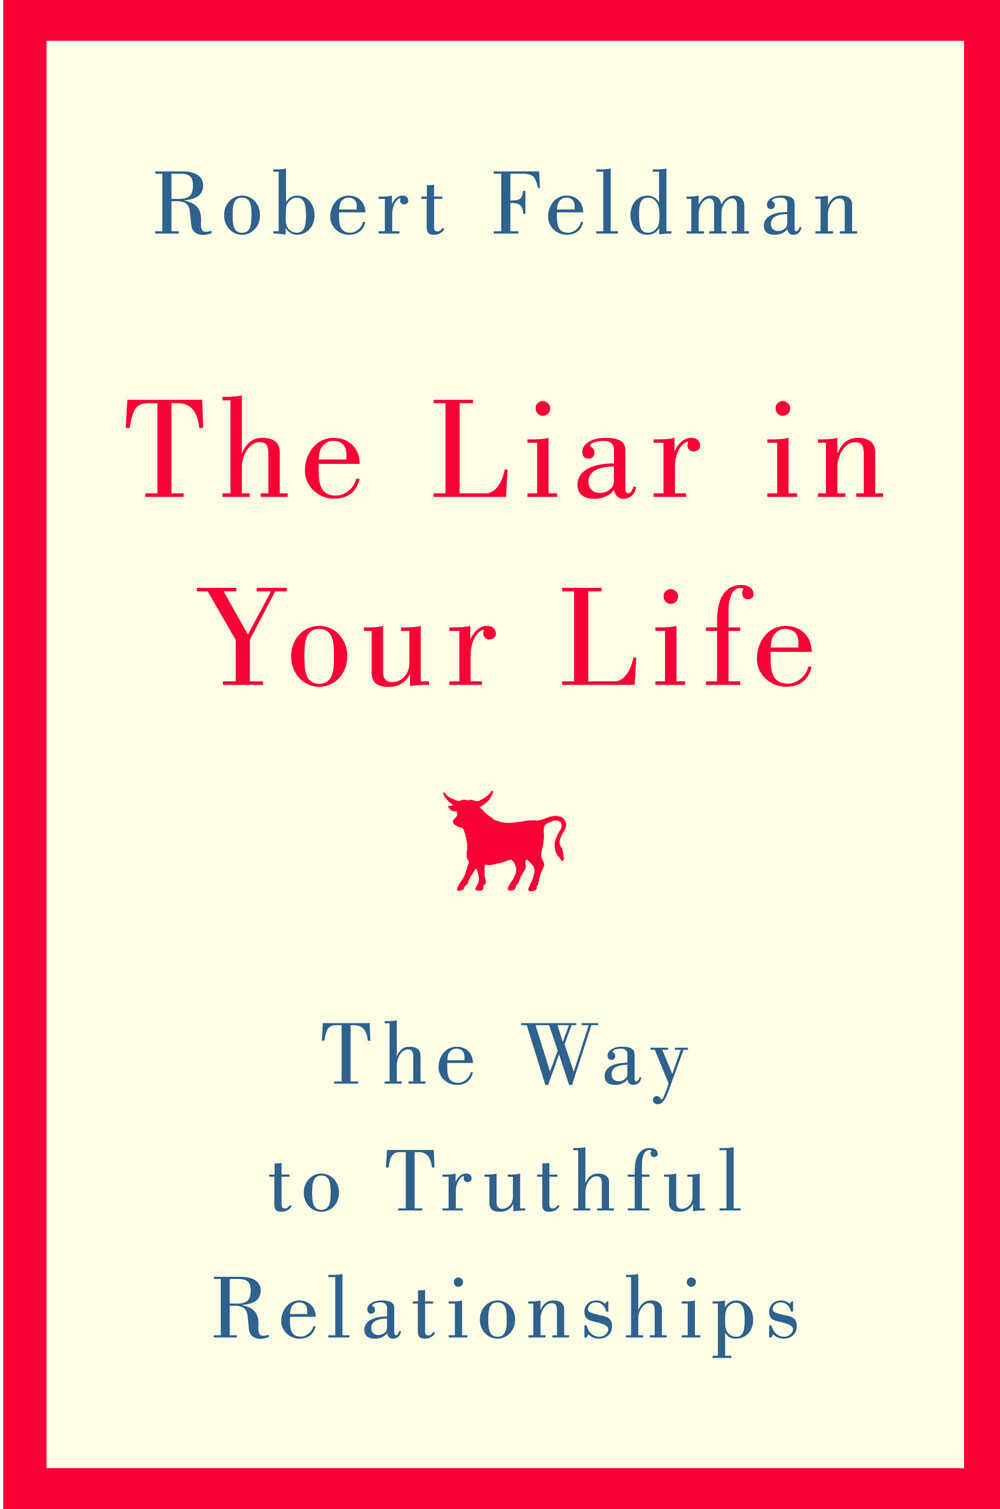 Cover of 'The Liar in Your Life' by Robert Feldman